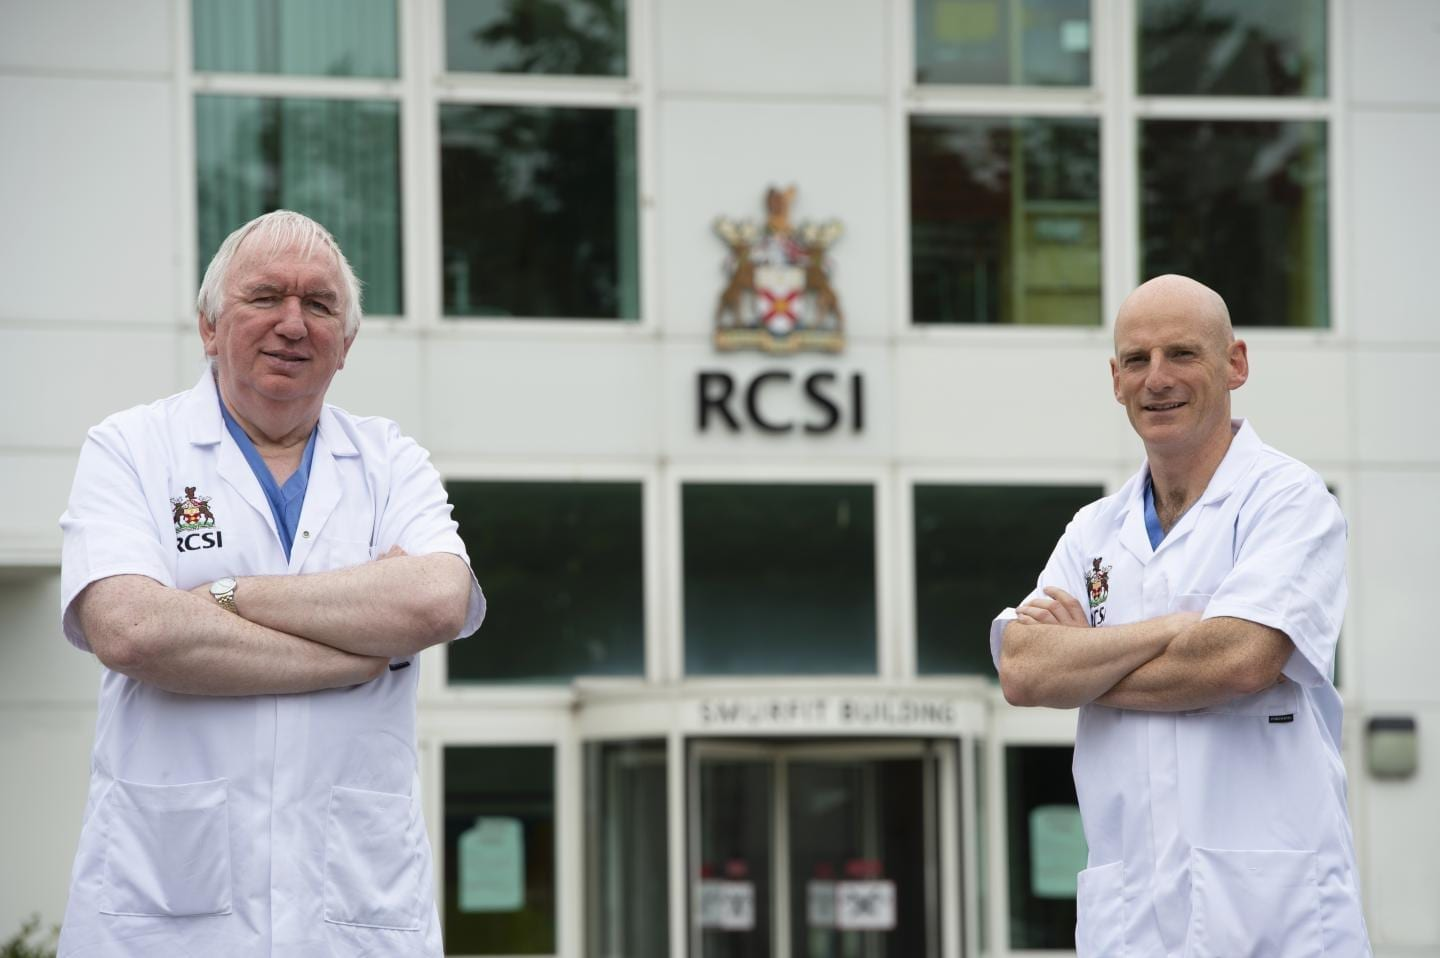 Professor Gerry McElvaney (left), the study's senior author and a consultant in Beaumont Hospital, and Professor Ger Curley (right) stand in front of the RCSI Education and Research Centre in Beaumont Hospital, Dublin. CREDIT Ray Lohan